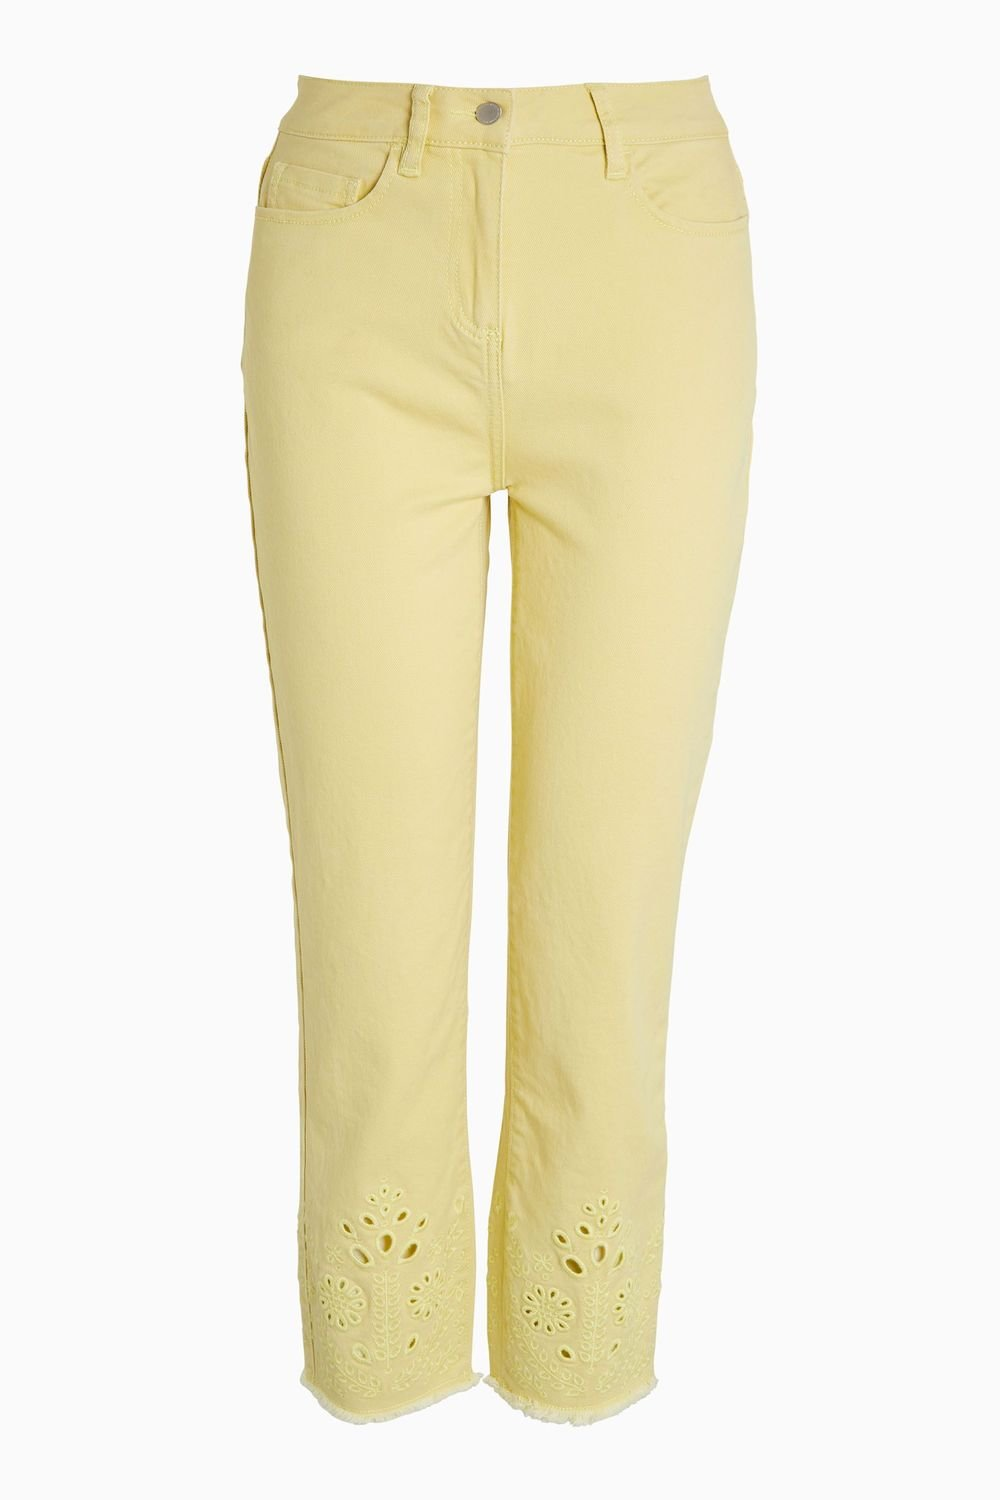 Next Embroidered Cut Out Cropped Jeans Online | Shop EziBuy